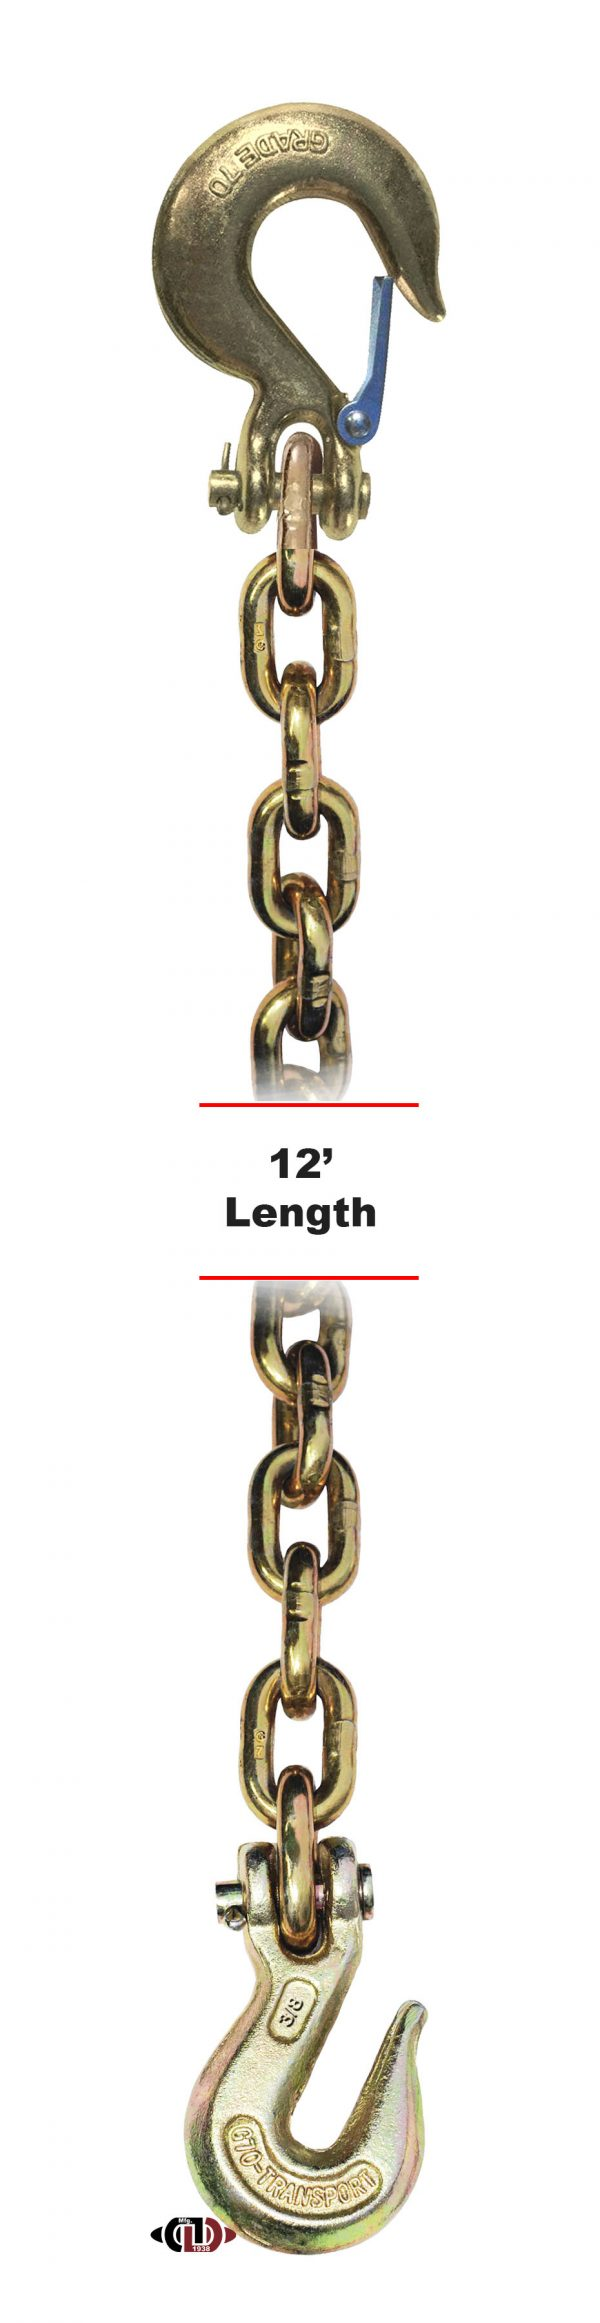 "G-70 3/8"" x 12' Chain with Grab Hook One End & Slip Hook One End DBC-38x12-G7-CSCGH"